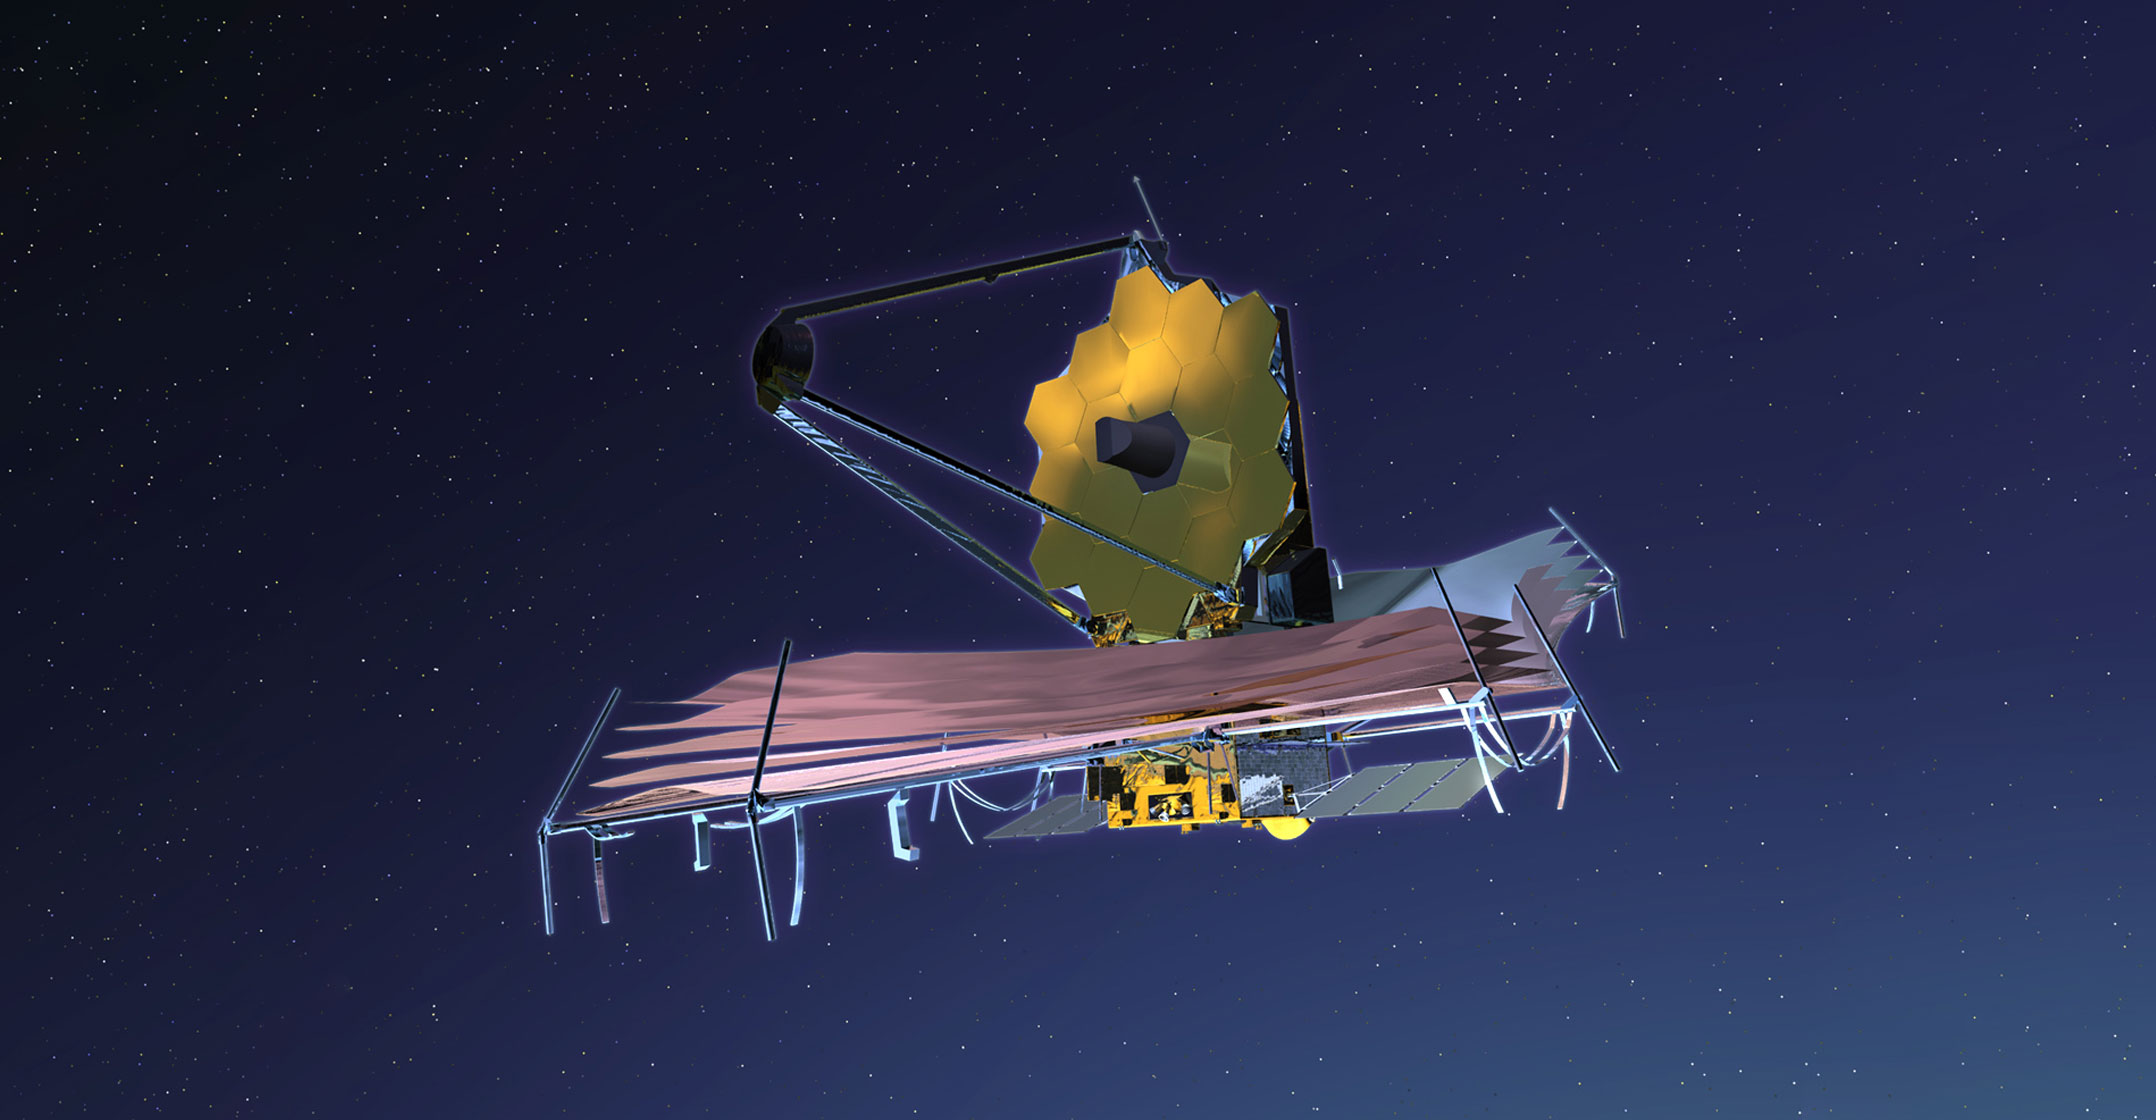 Artist's conception of the James Webb Space Telescope. Image c  o Nasa